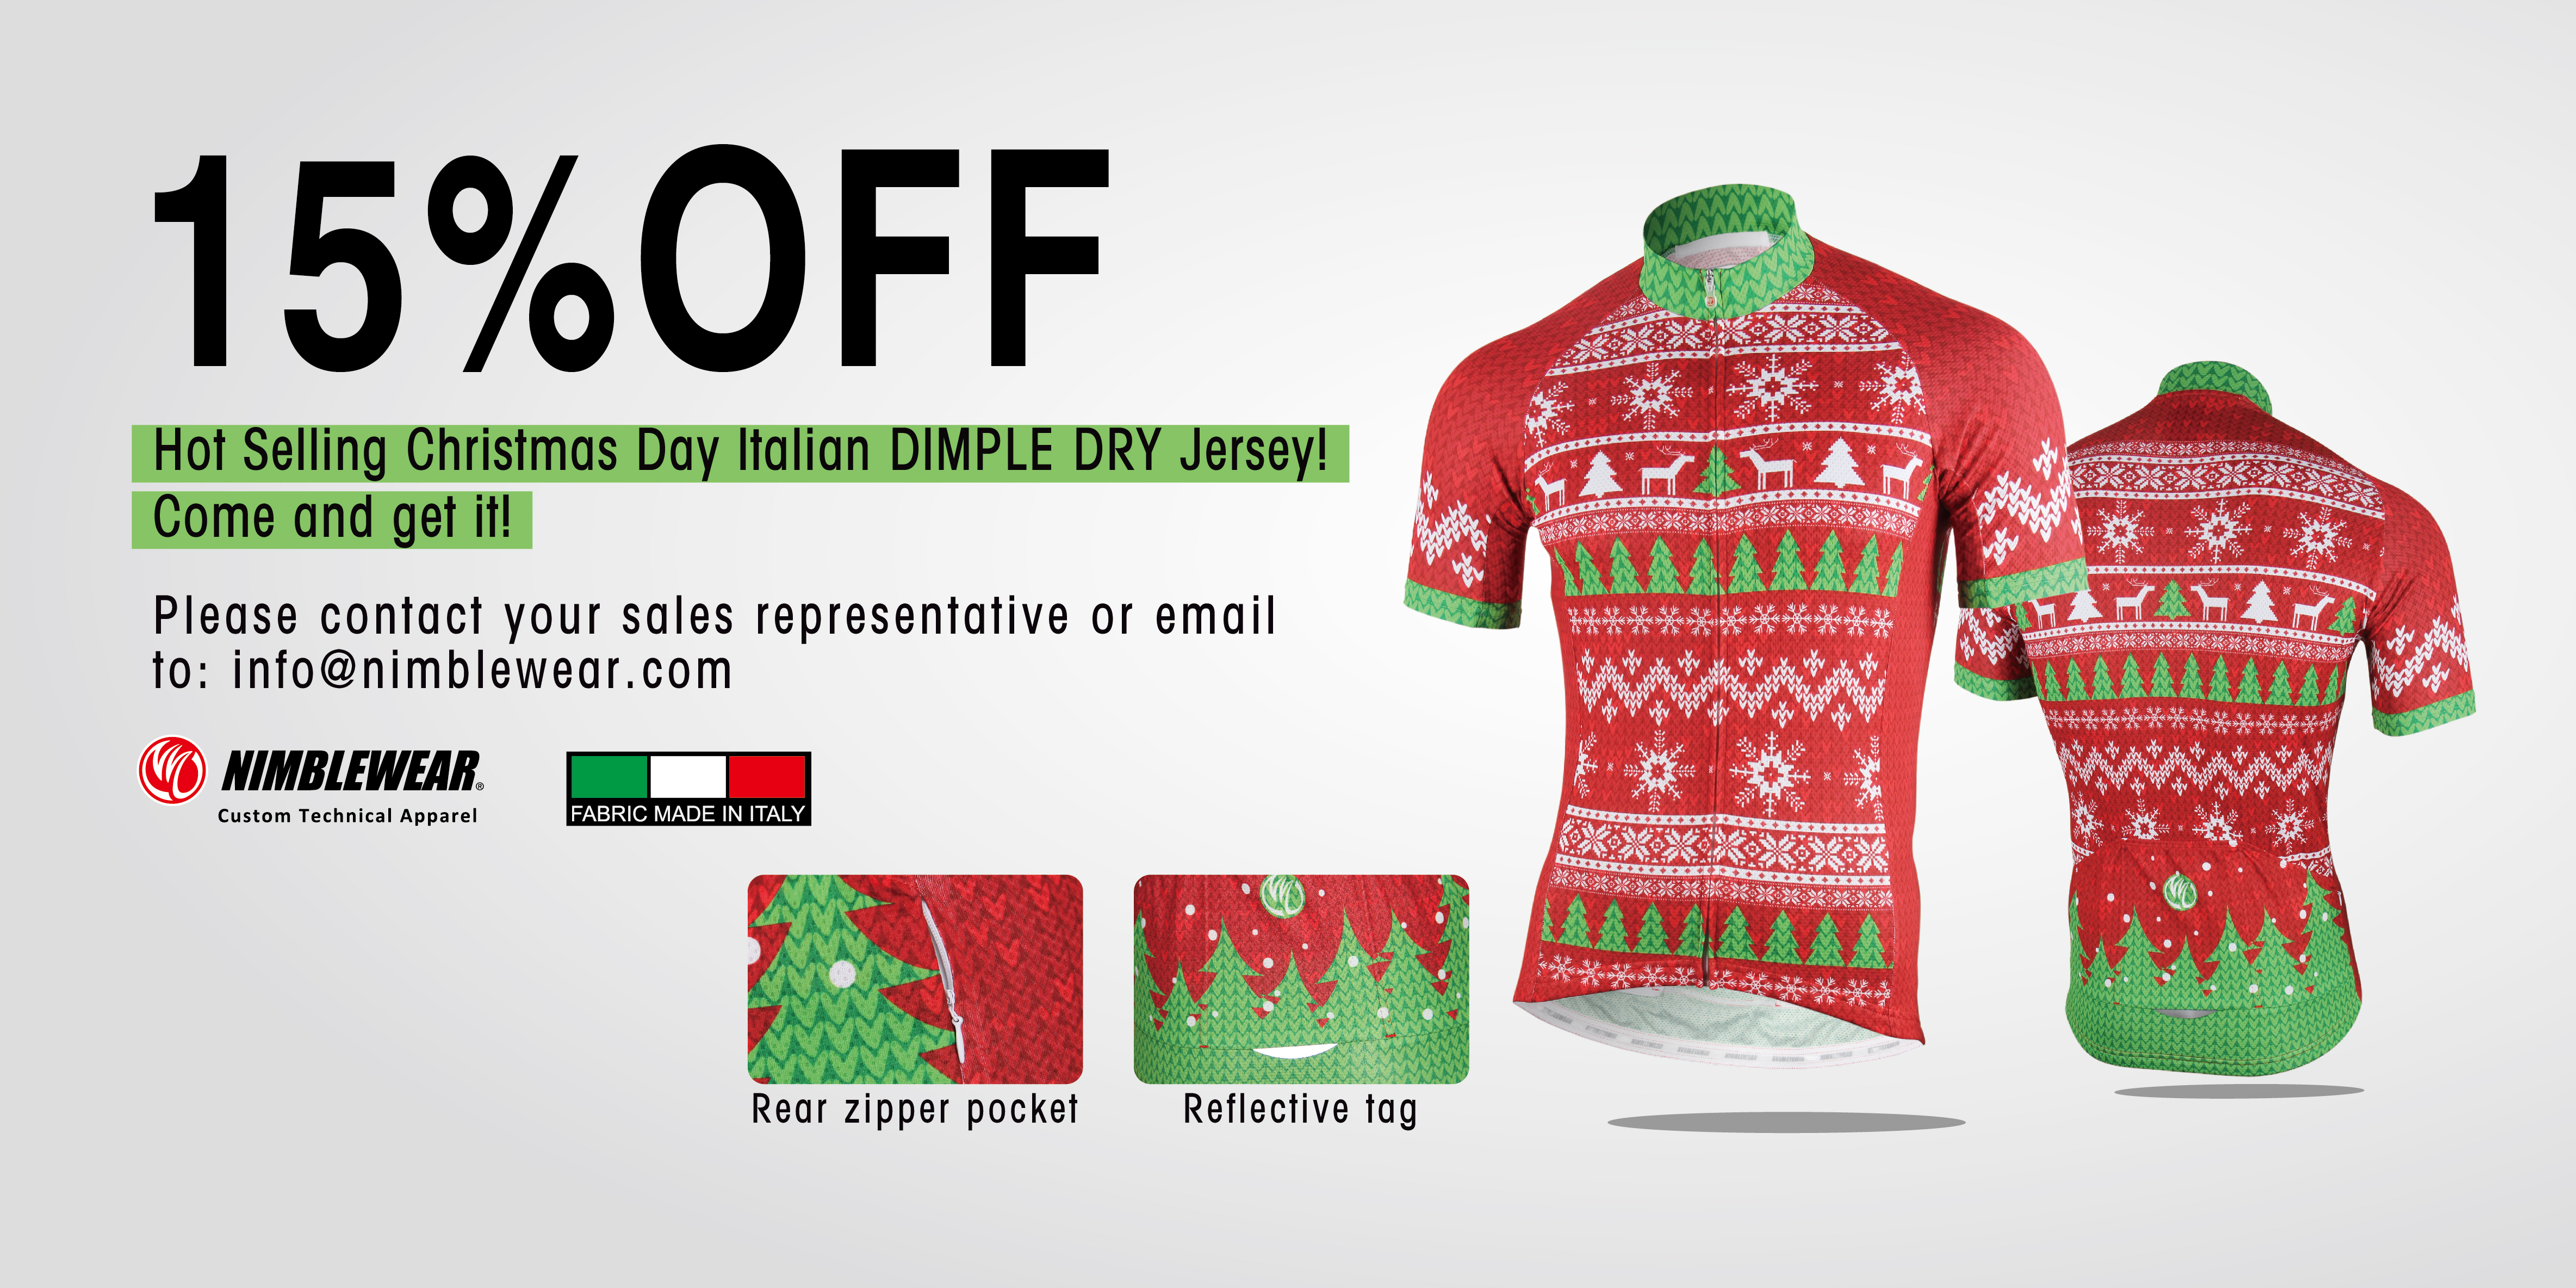 15%OFF for Christmas Italian Dimple Dry Cycling Jersey